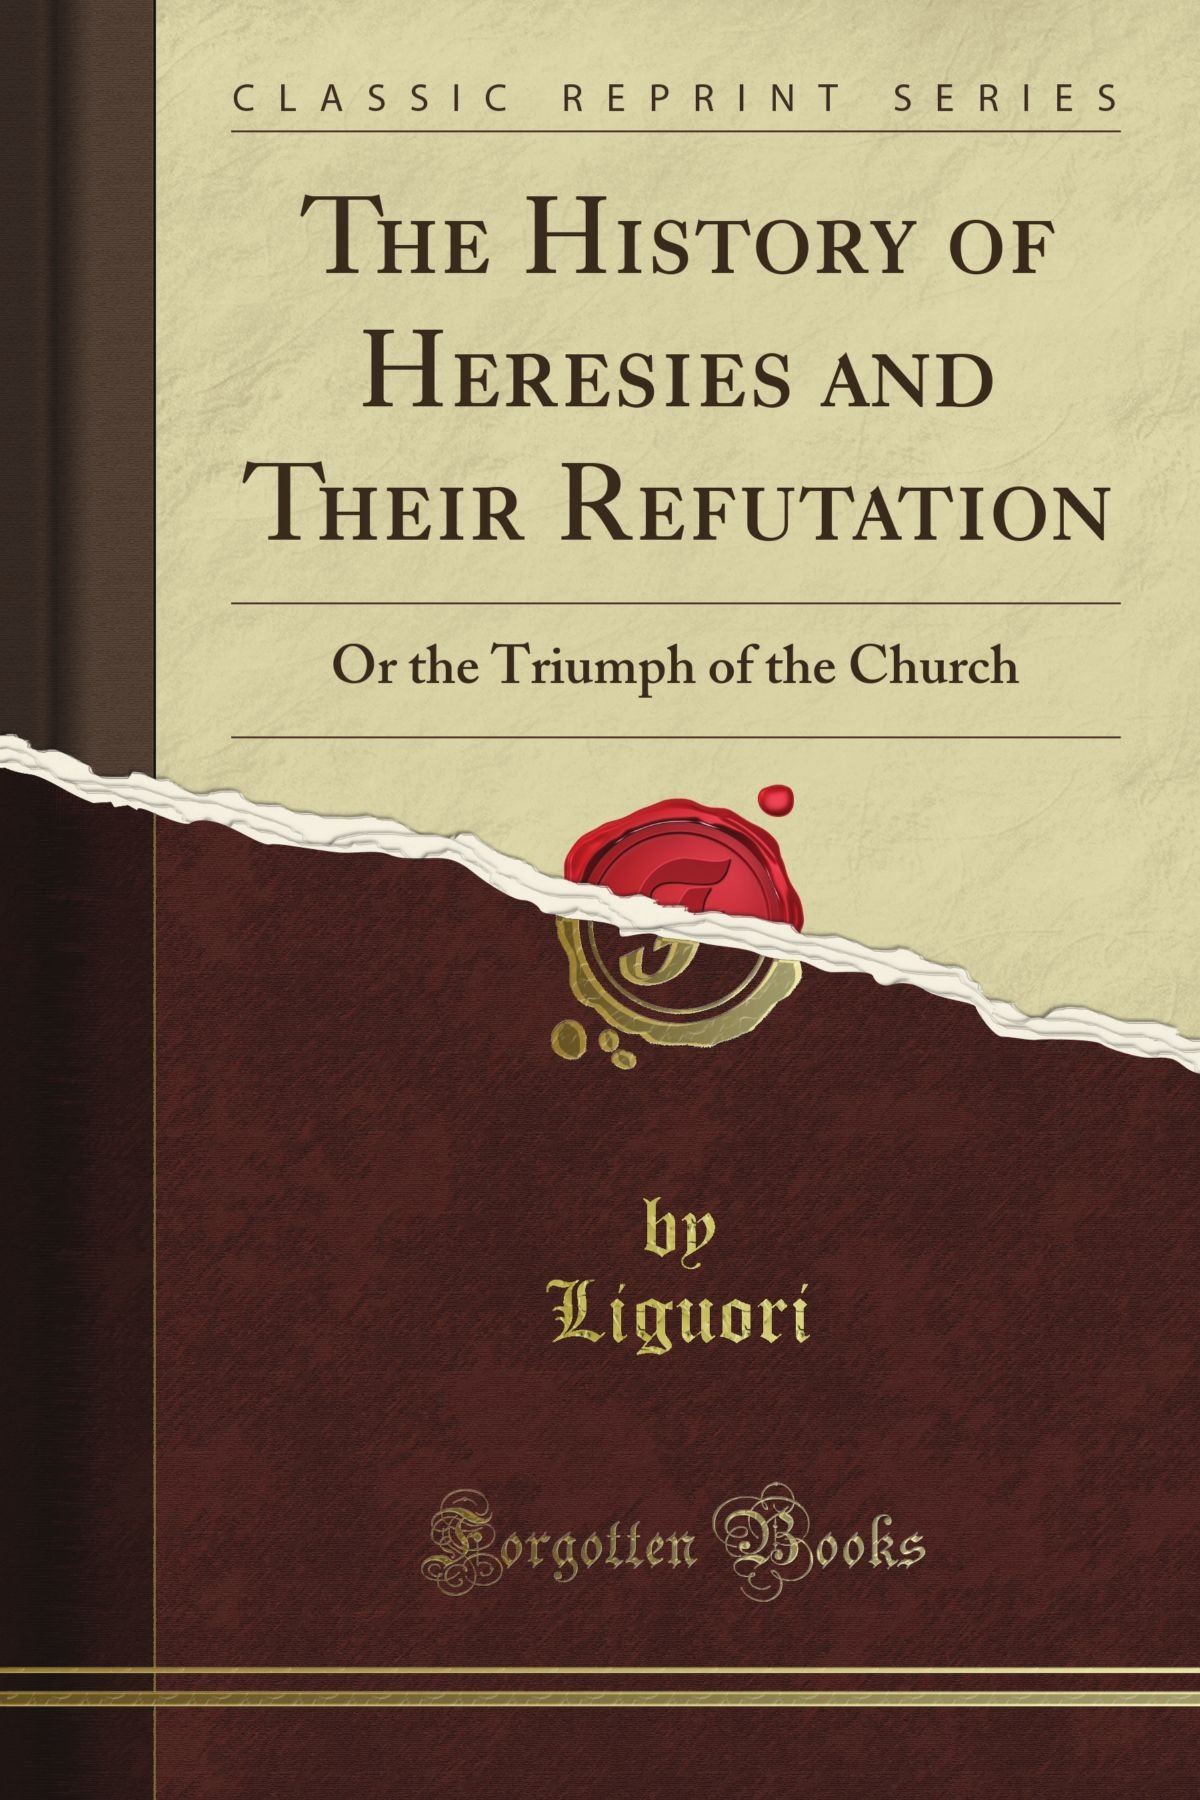 The History of Heresies and Their Refutation: Or the Triumph of the Church (Classic Reprint) pdf epub